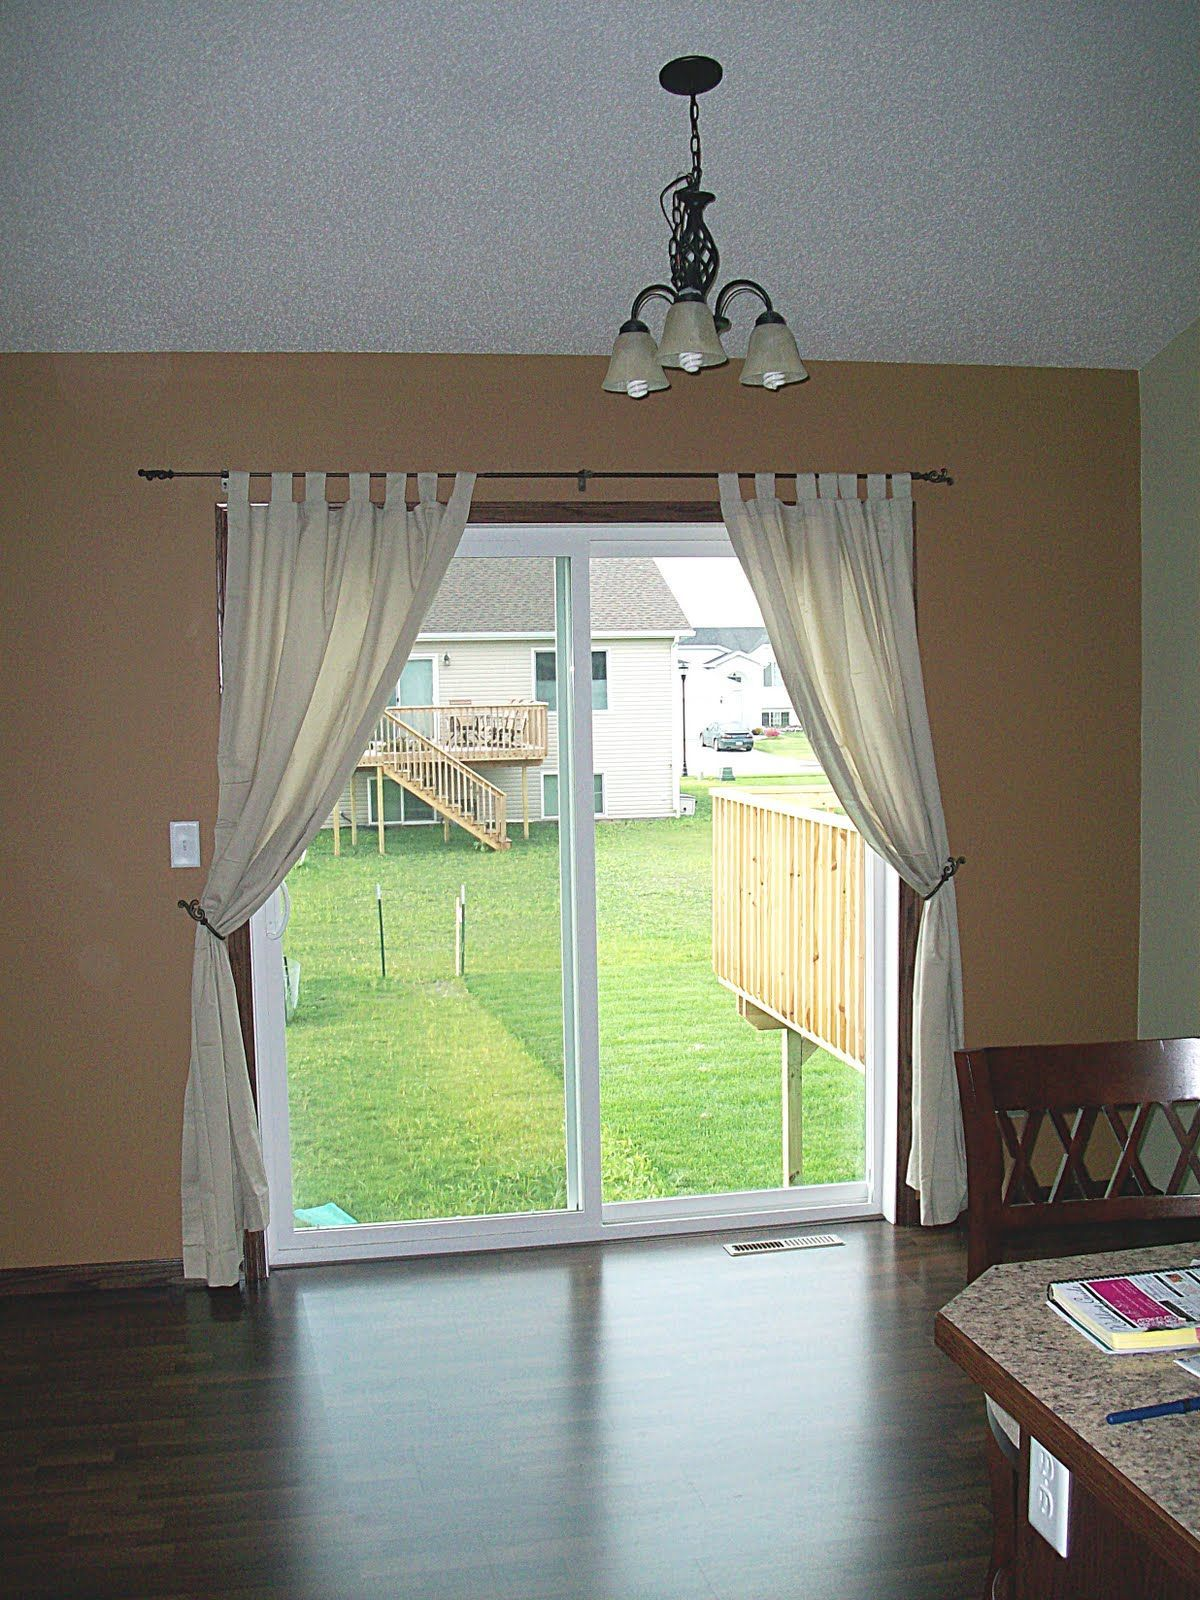 Sliding patio door curtains ideas - Sliding Door Curtain